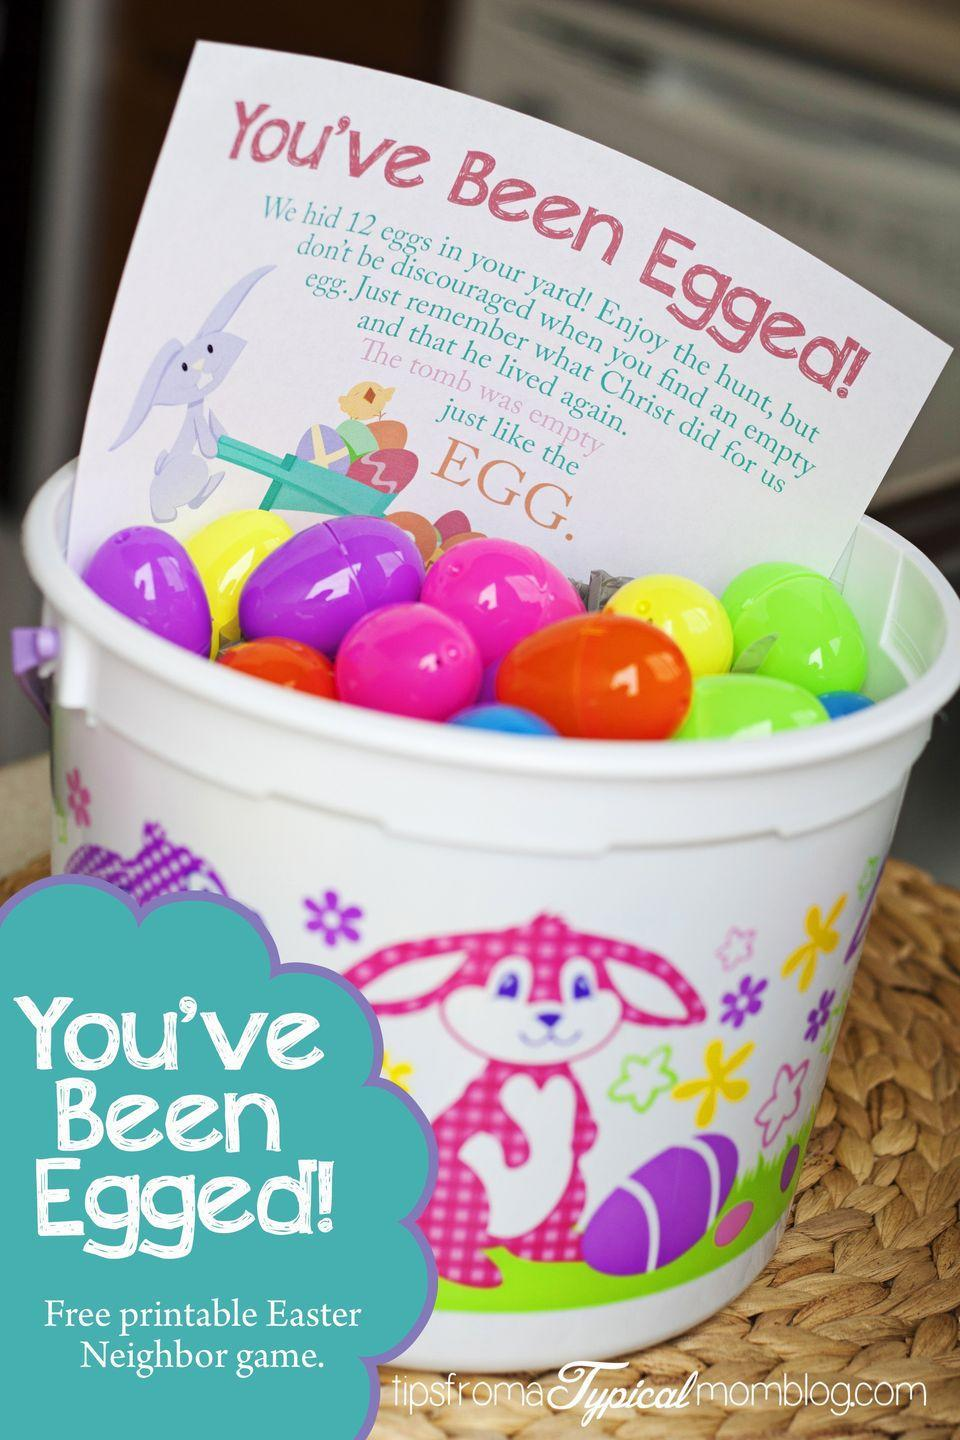 "<p>Use this free printable from blogger Anette to surprise your neighbors with a fun and friendly egg hunt on Easter morning. </p><p><strong>Get the tutorial at <a href=""https://www.tipsfromatypicalmomblog.com/2014/03/youve-egged-free-printable-neighbor-easter-game.html"" rel=""nofollow noopener"" target=""_blank"" data-ylk=""slk:Tips from a Typical Mom"" class=""link rapid-noclick-resp"">Tips from a Typical Mom</a>.</strong></p>"